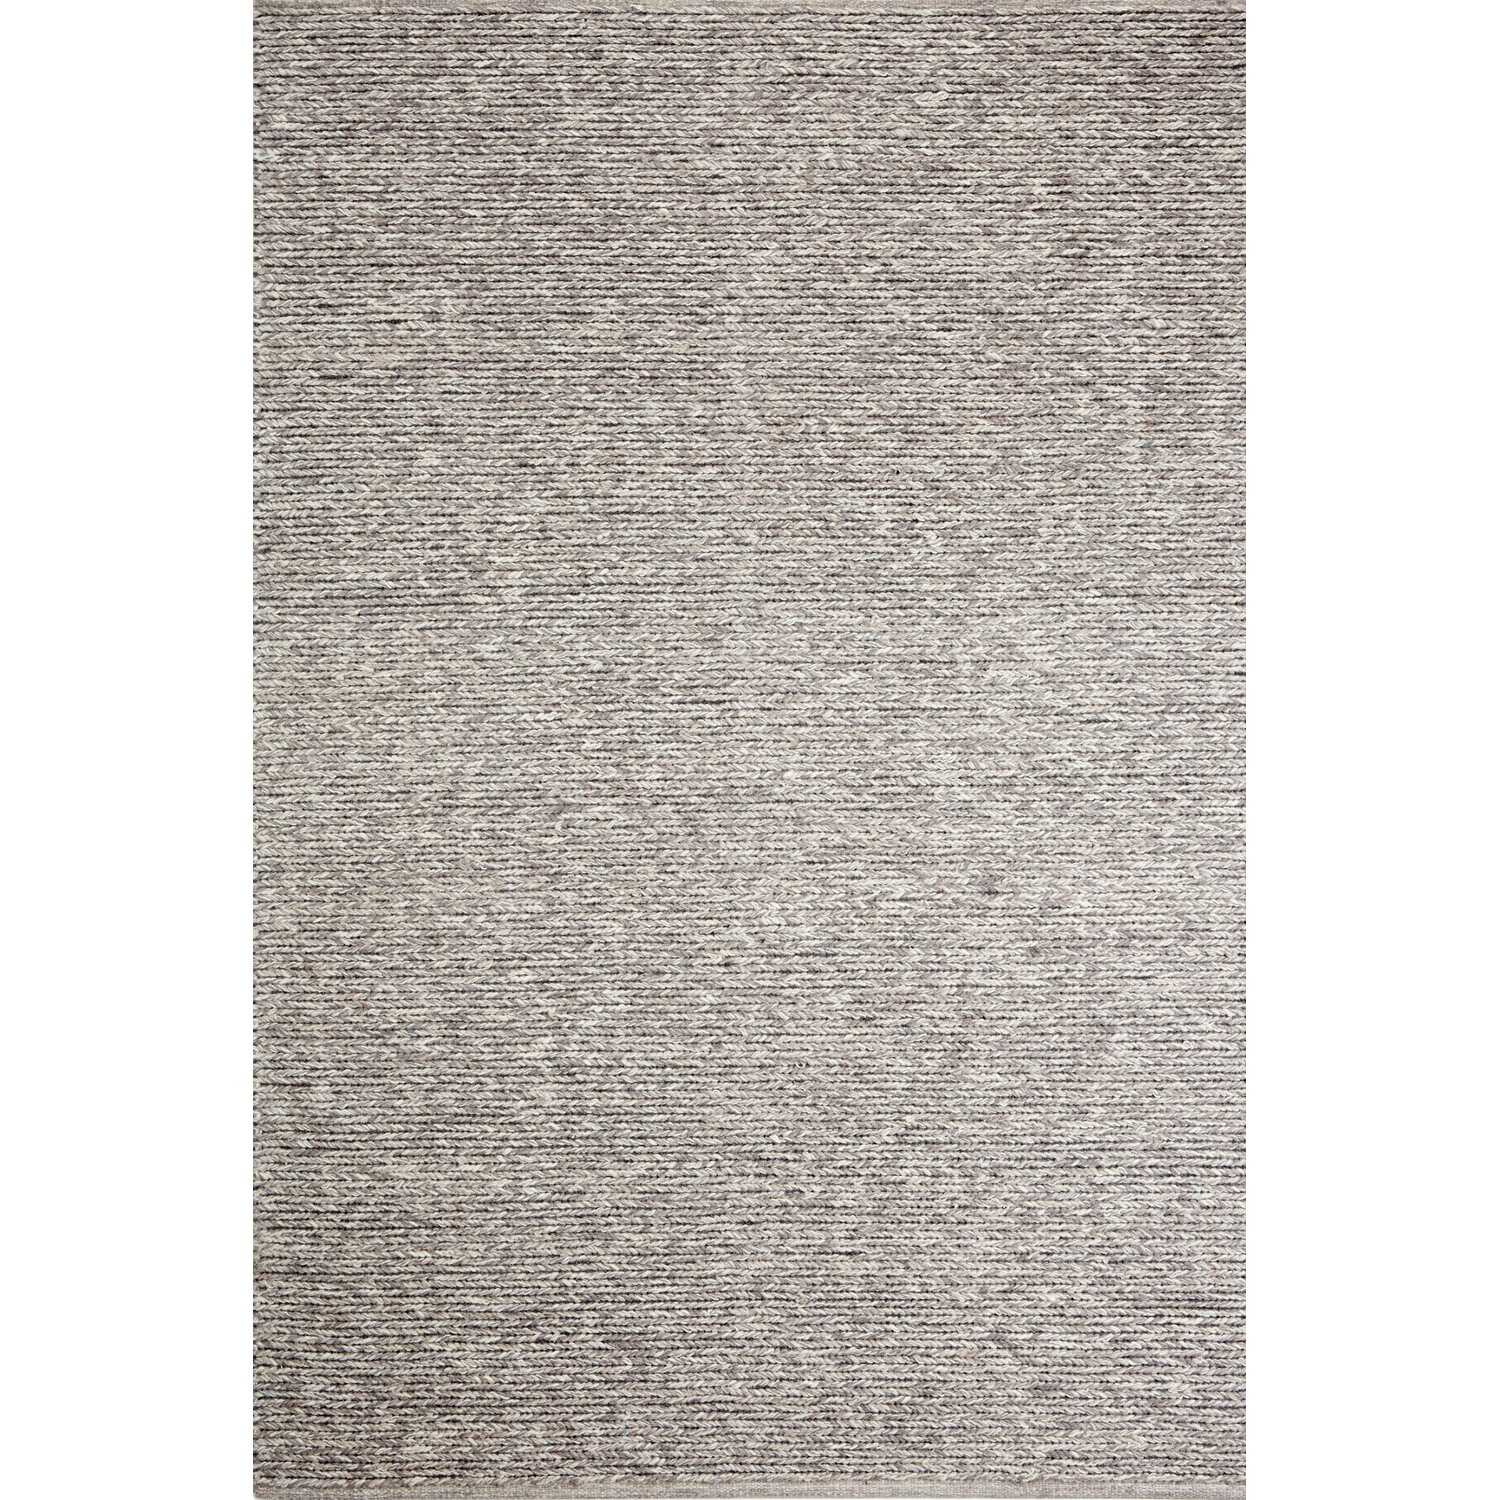 bb home passion Barbara Becker Teppich Chalet 140 cm x 200 cm Grau